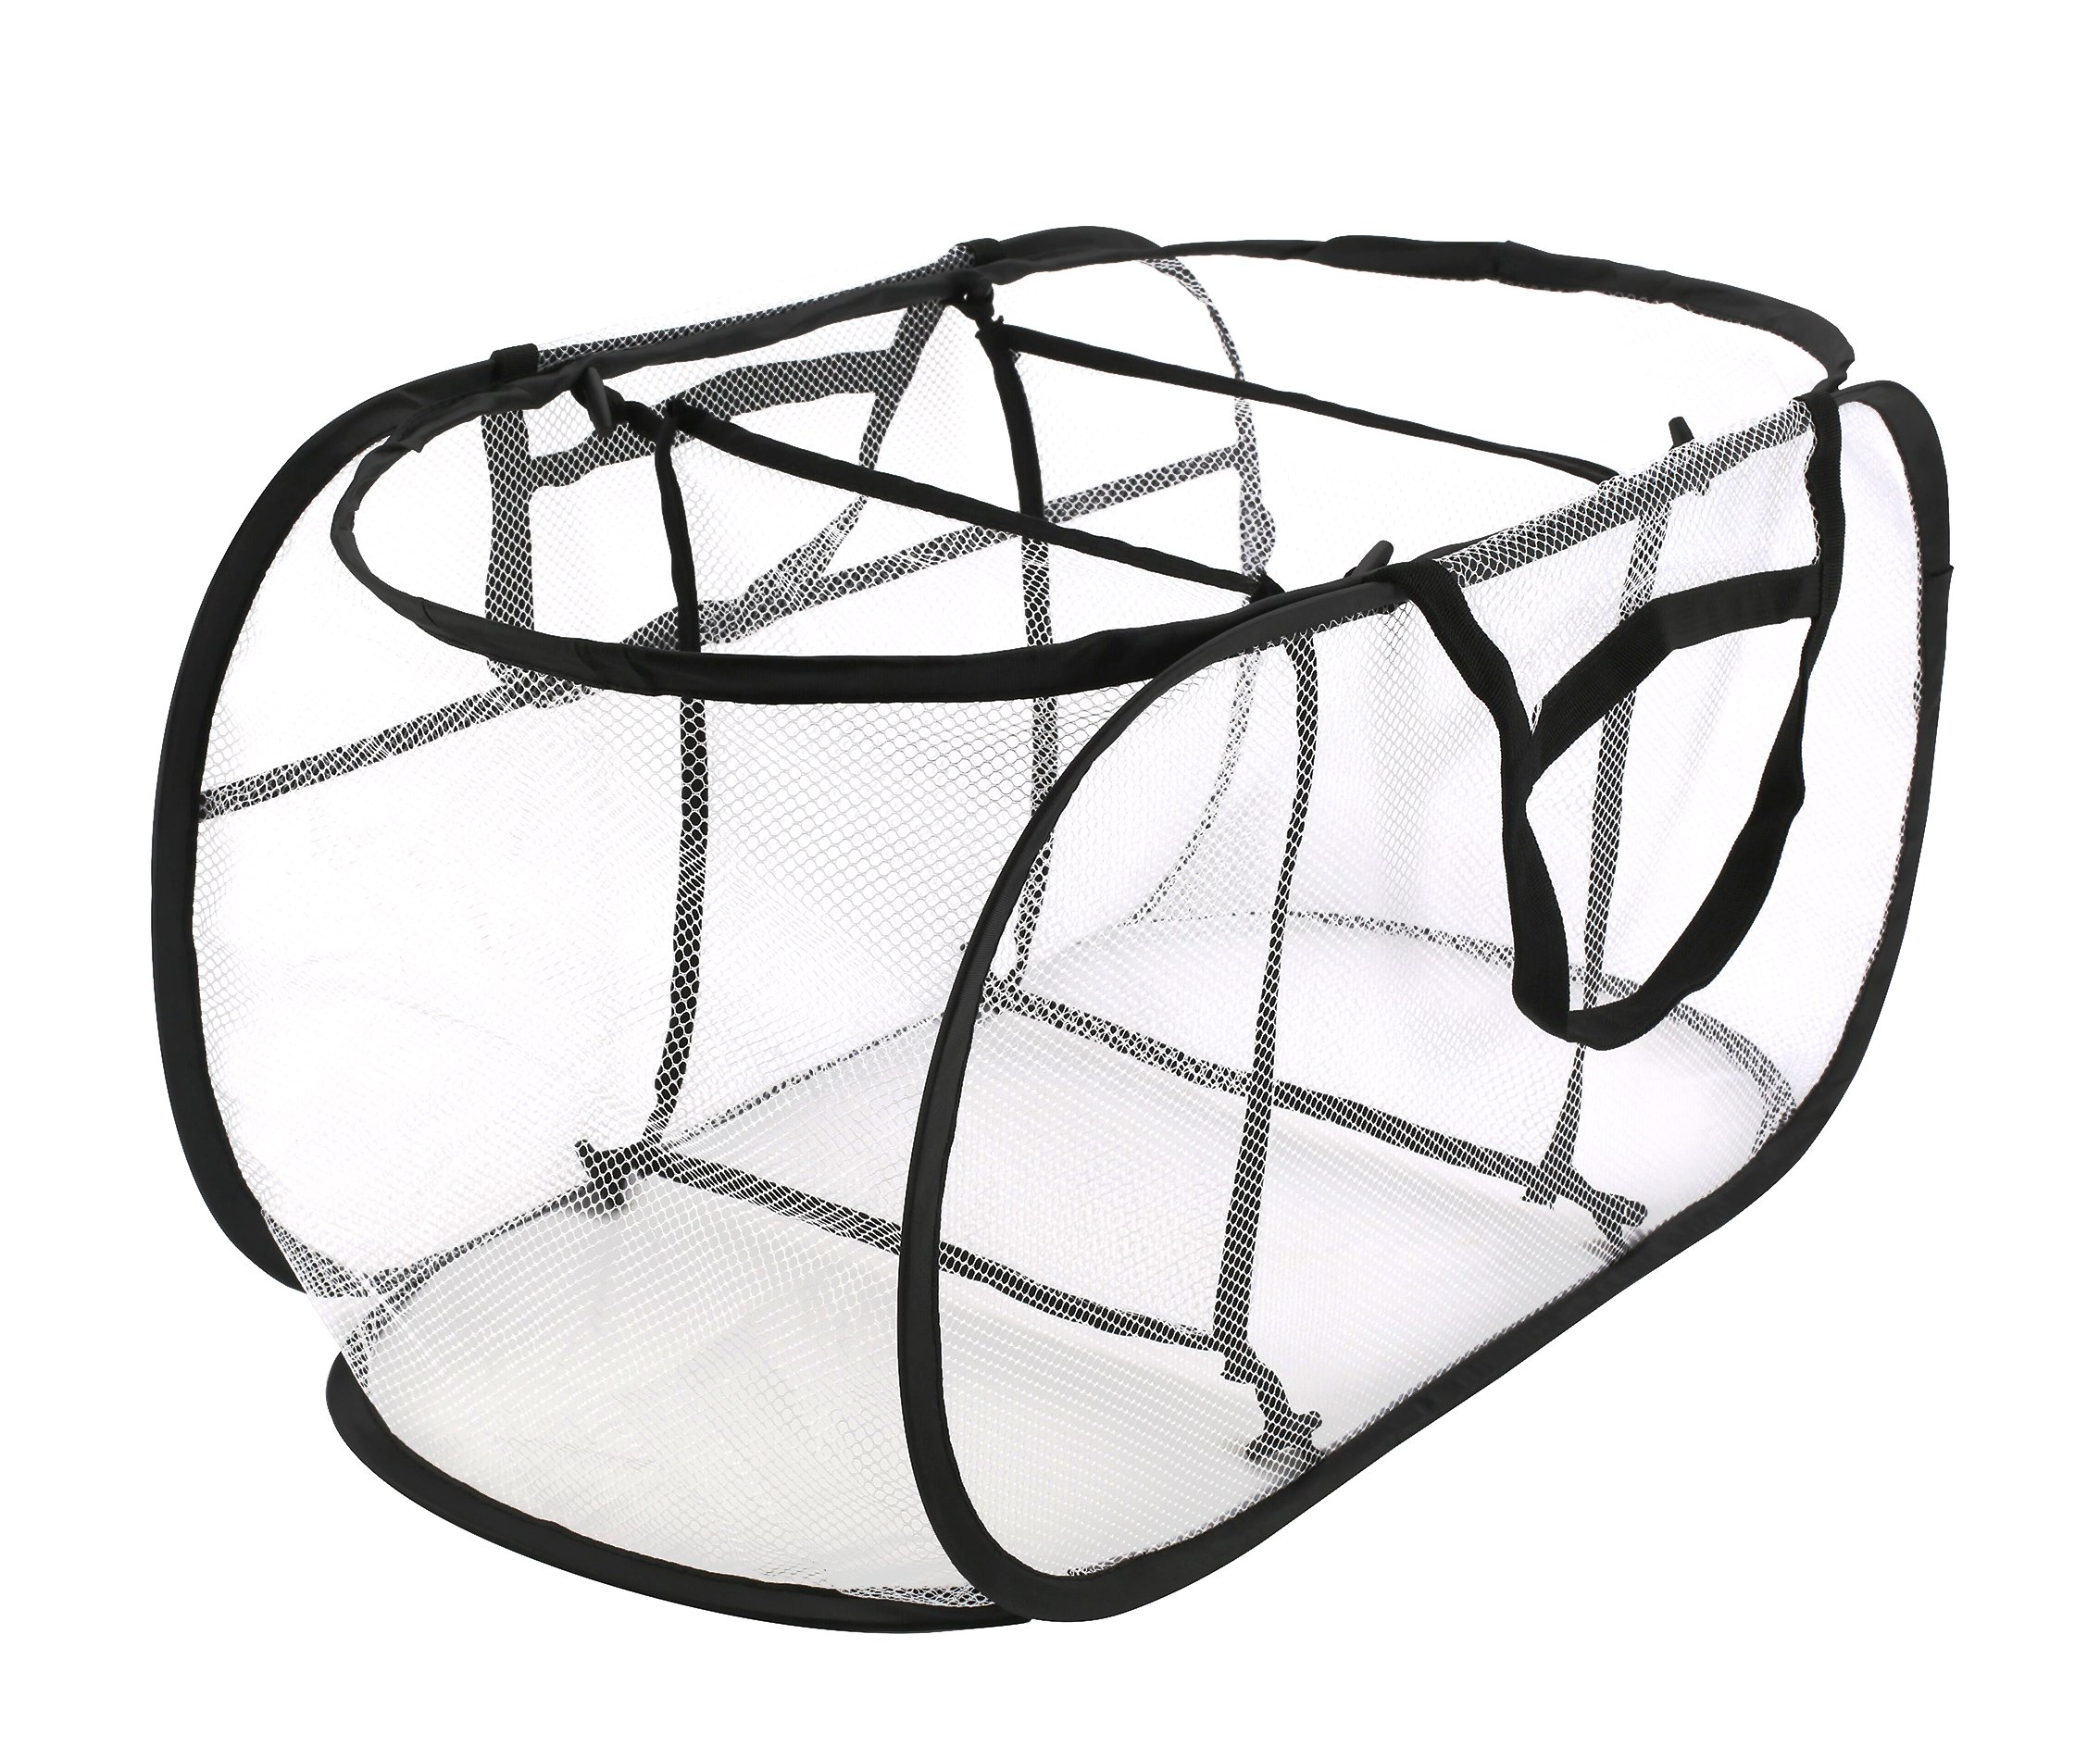 Collapsible Mesh Laundry Hampers, Estorager 3 Compartment Pop Up Sorter Baskets with Durable Portable Handles (Black Handle, S)